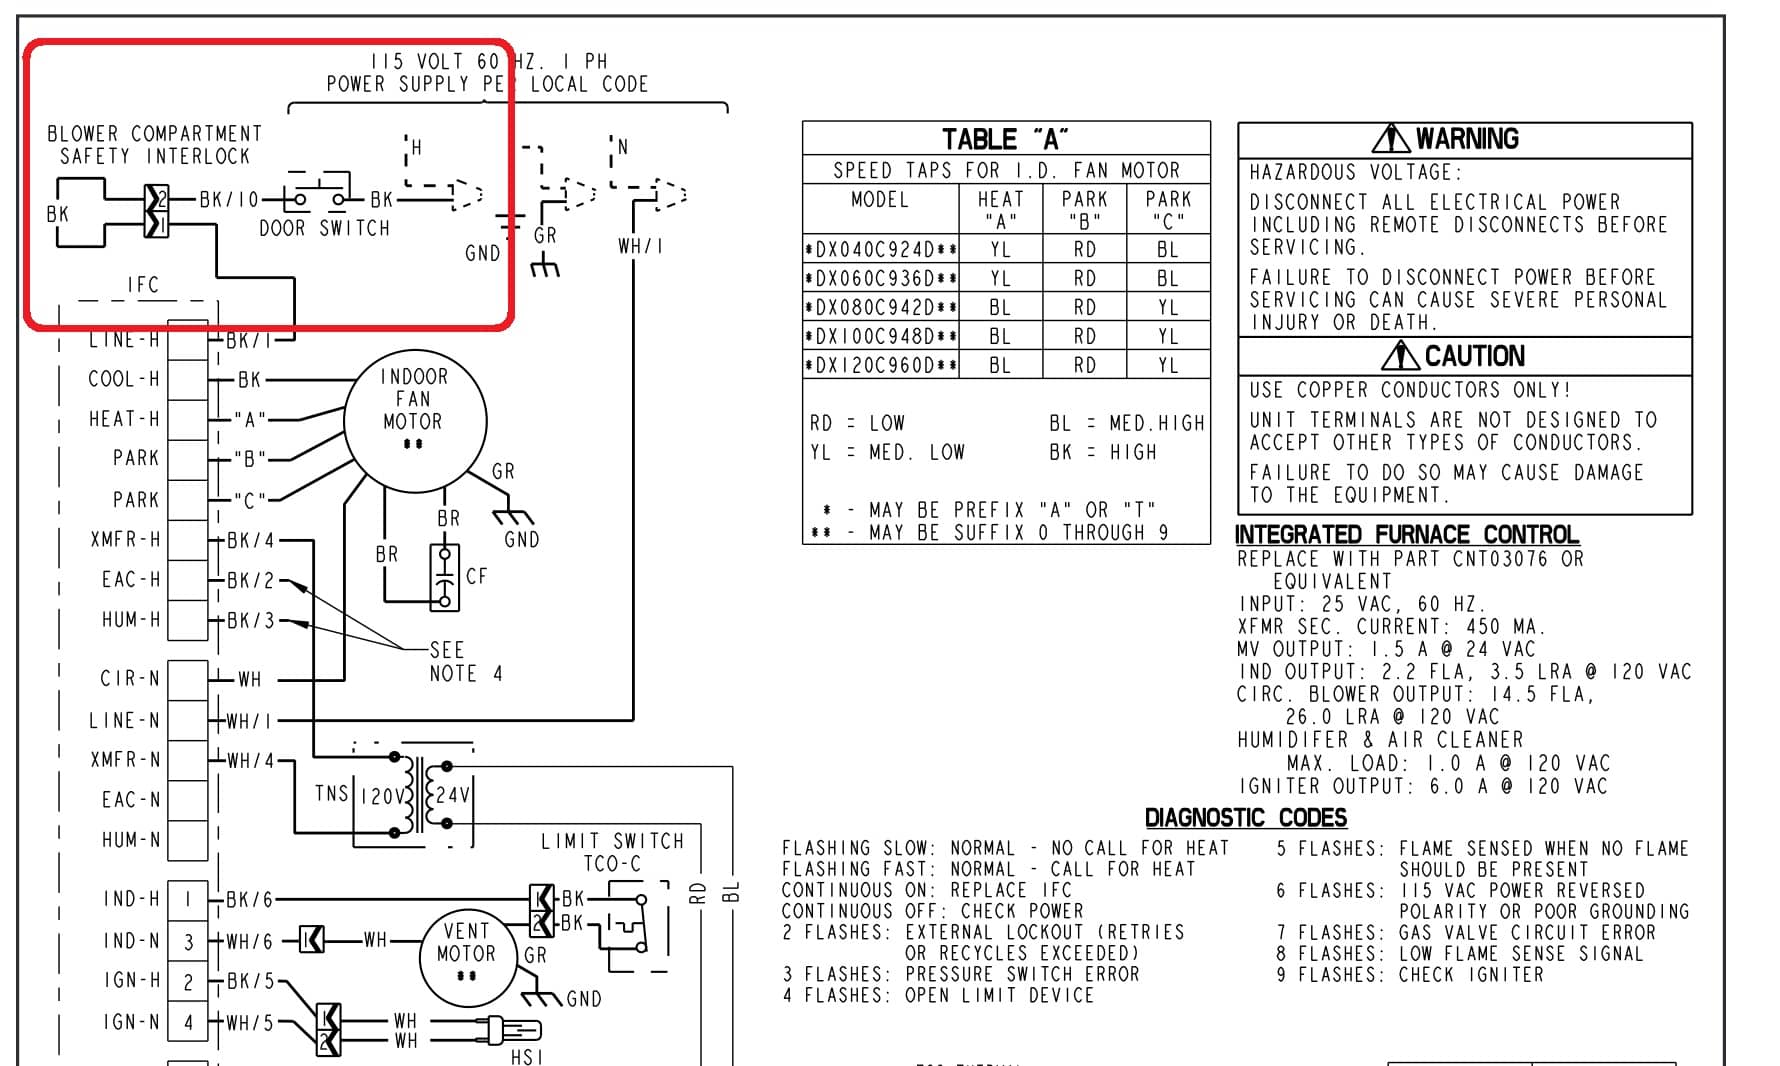 Trane_Furnace_Wiring_PARTIAL_023 trane xr90 wiring diagram trane xr90 owners manual \u2022 wiring trane xe90 wiring diagram at arjmand.co